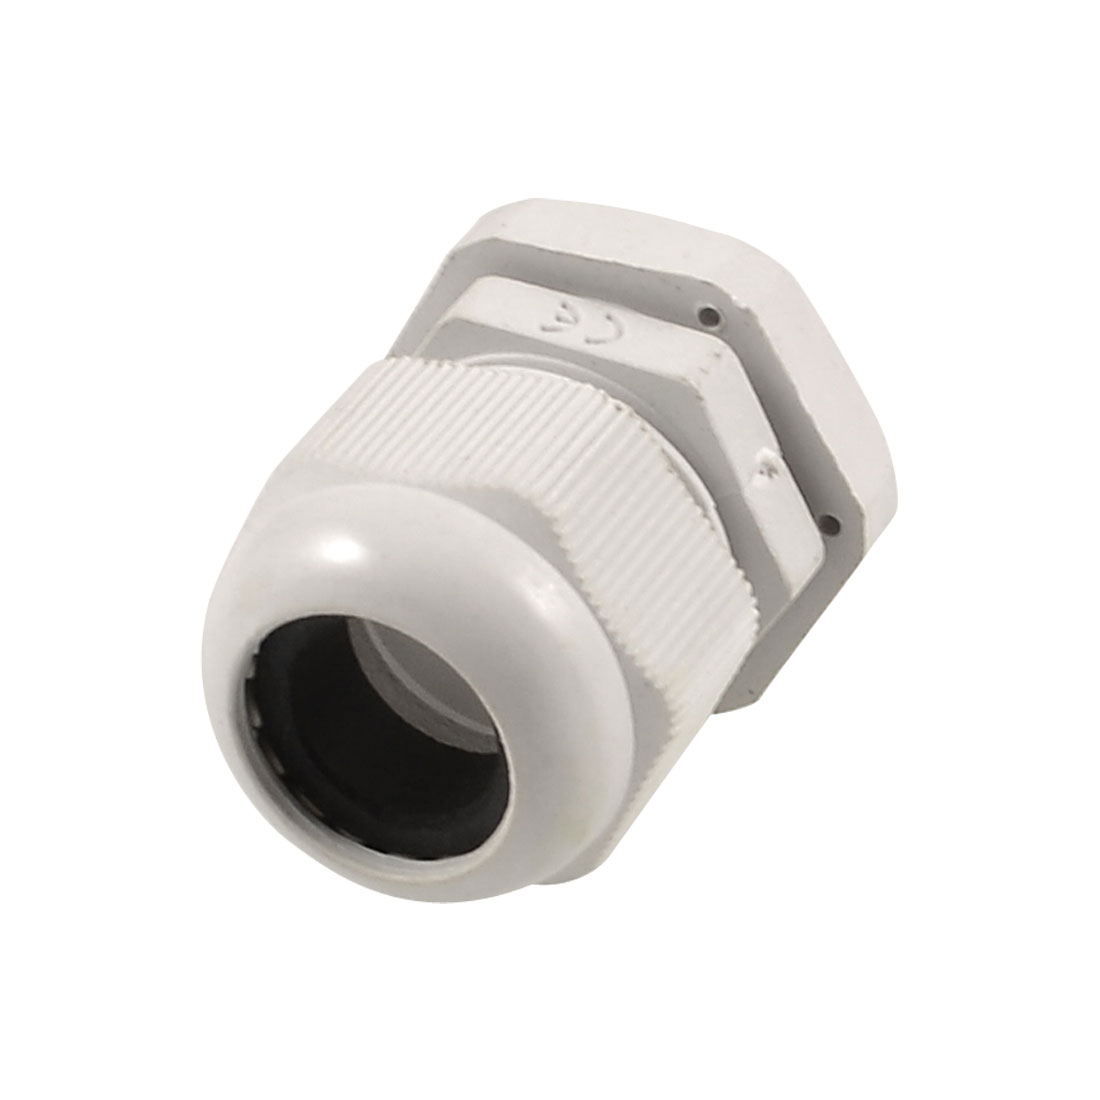 12mm-16mm Cables Waterproof PG18 White Plastic Glands Connectors